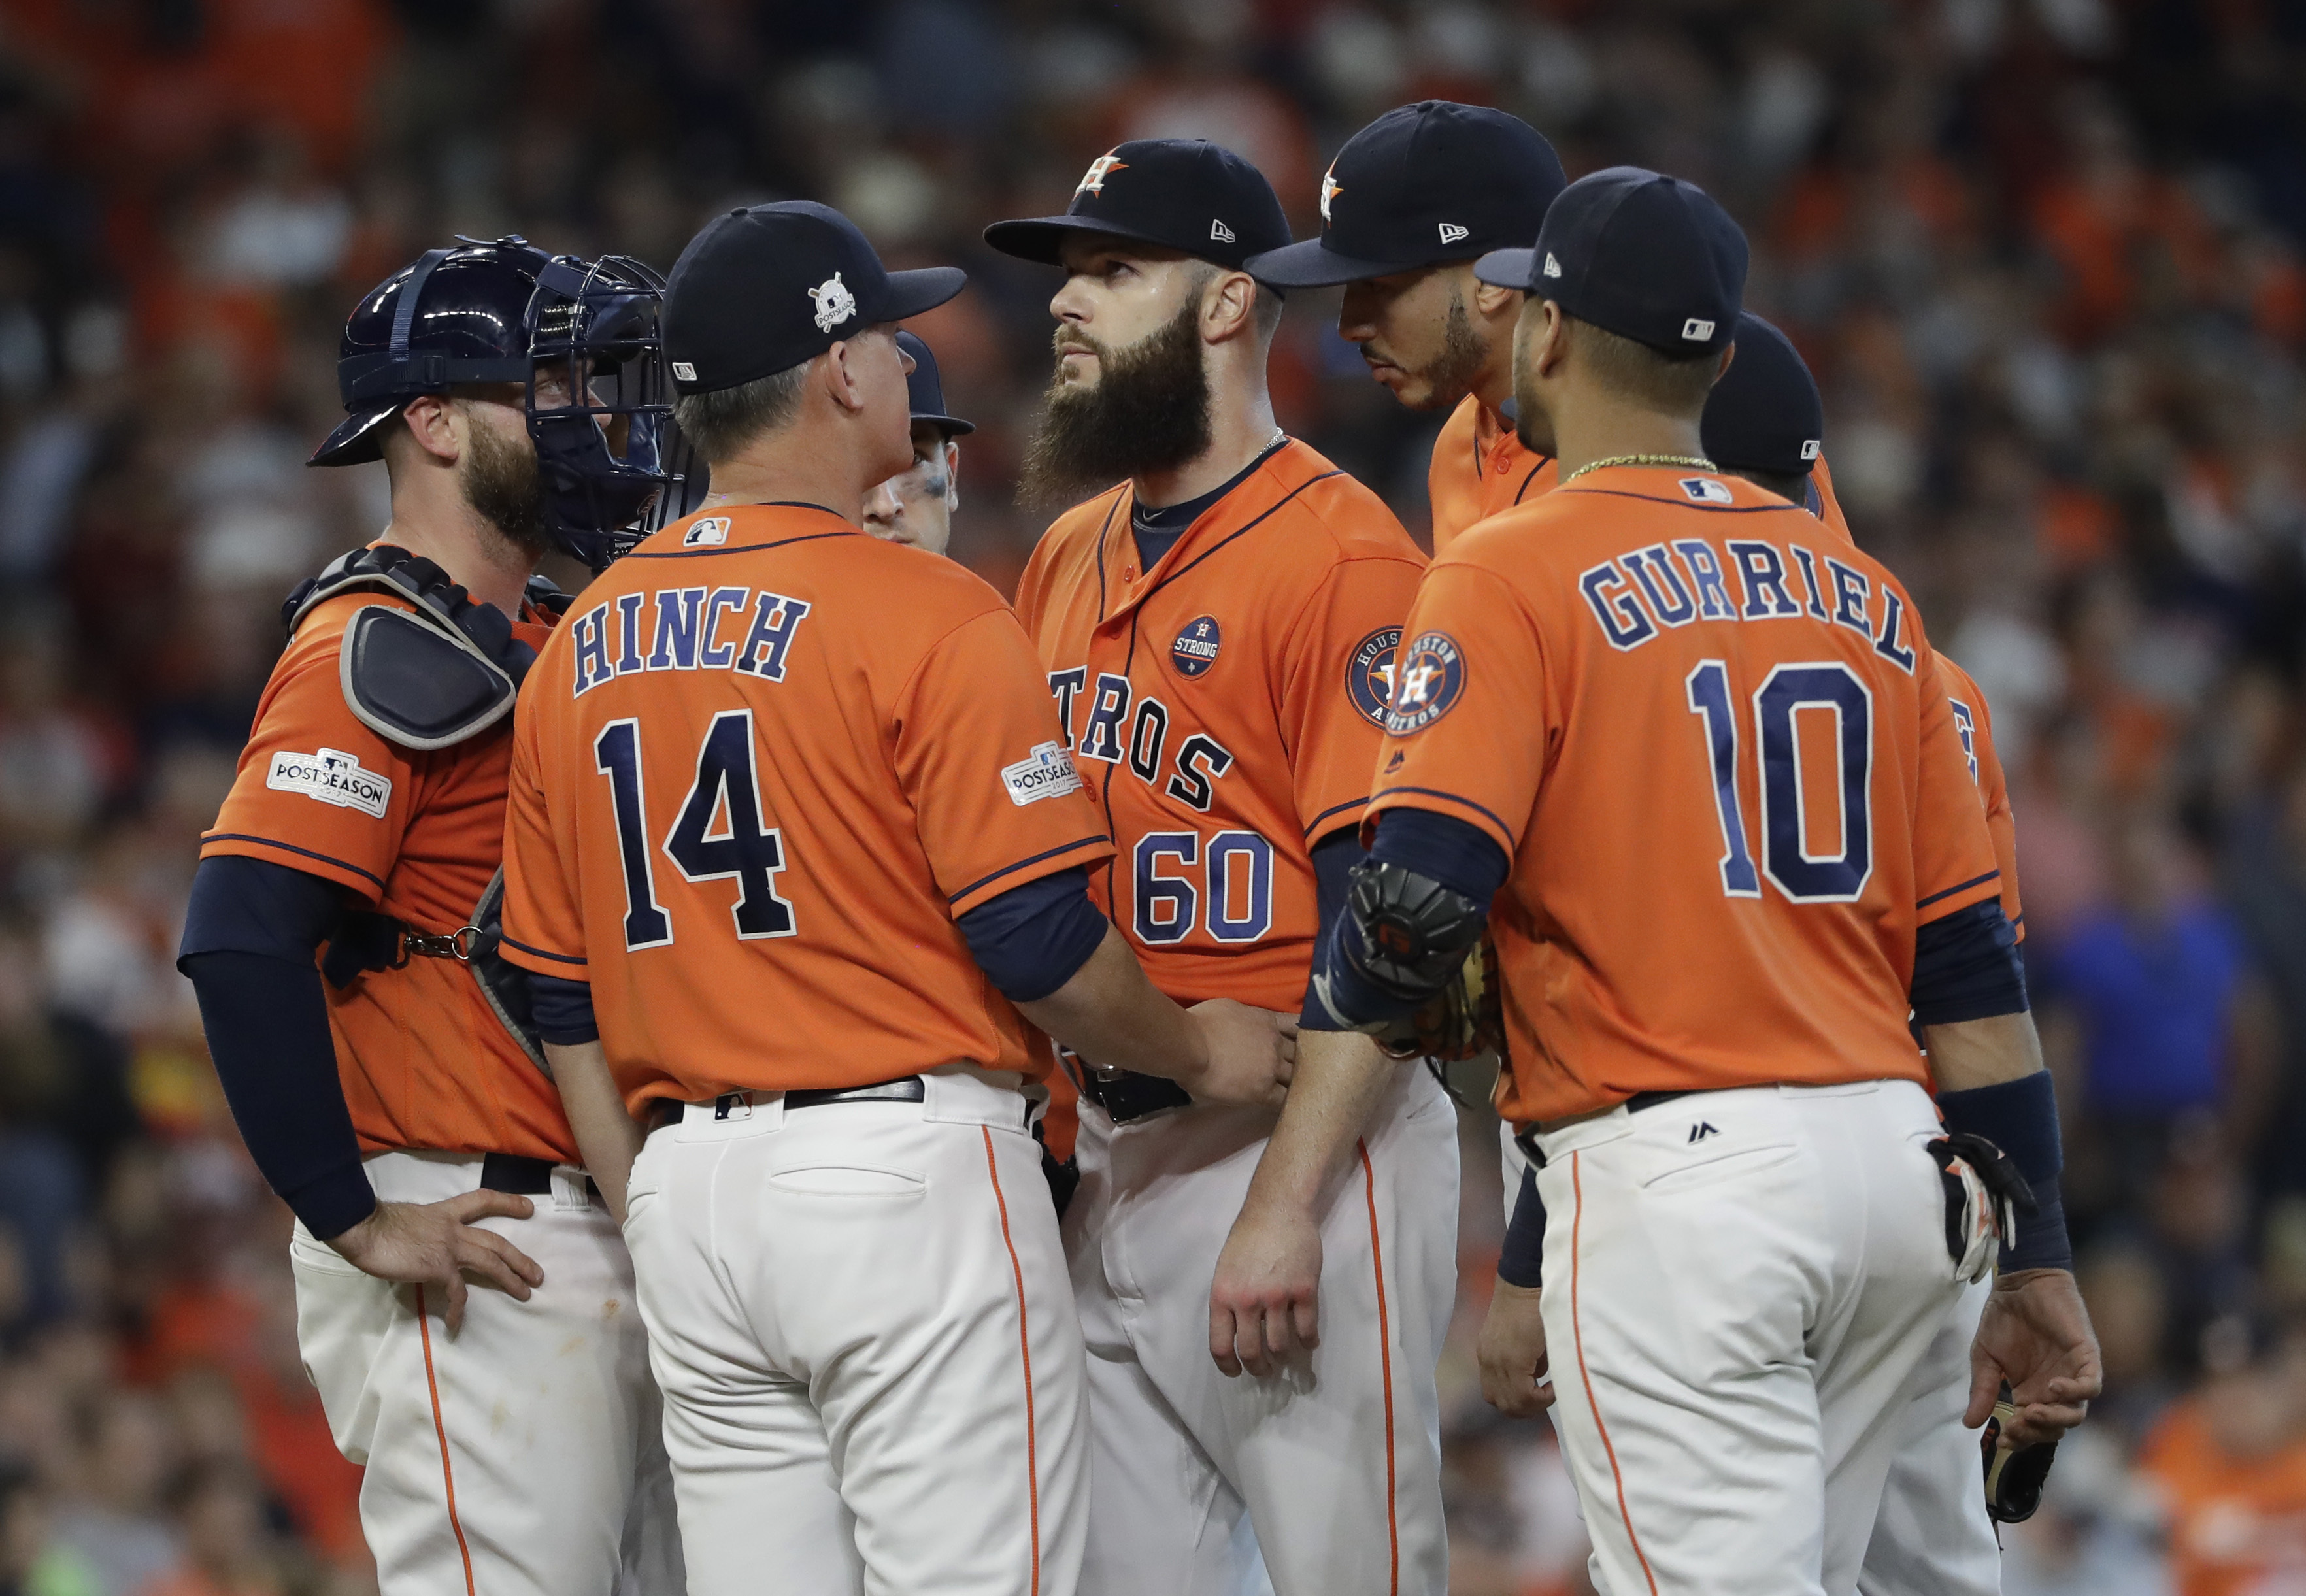 <div class='meta'><div class='origin-logo' data-origin='AP'></div><span class='caption-text' data-credit='David J. Phillip'>Houston Astros starting pitcher Dallas Keuchel (60) is pulled from the game during the sixth inning in Game 2 of baseball's American League Division Series.</span></div>